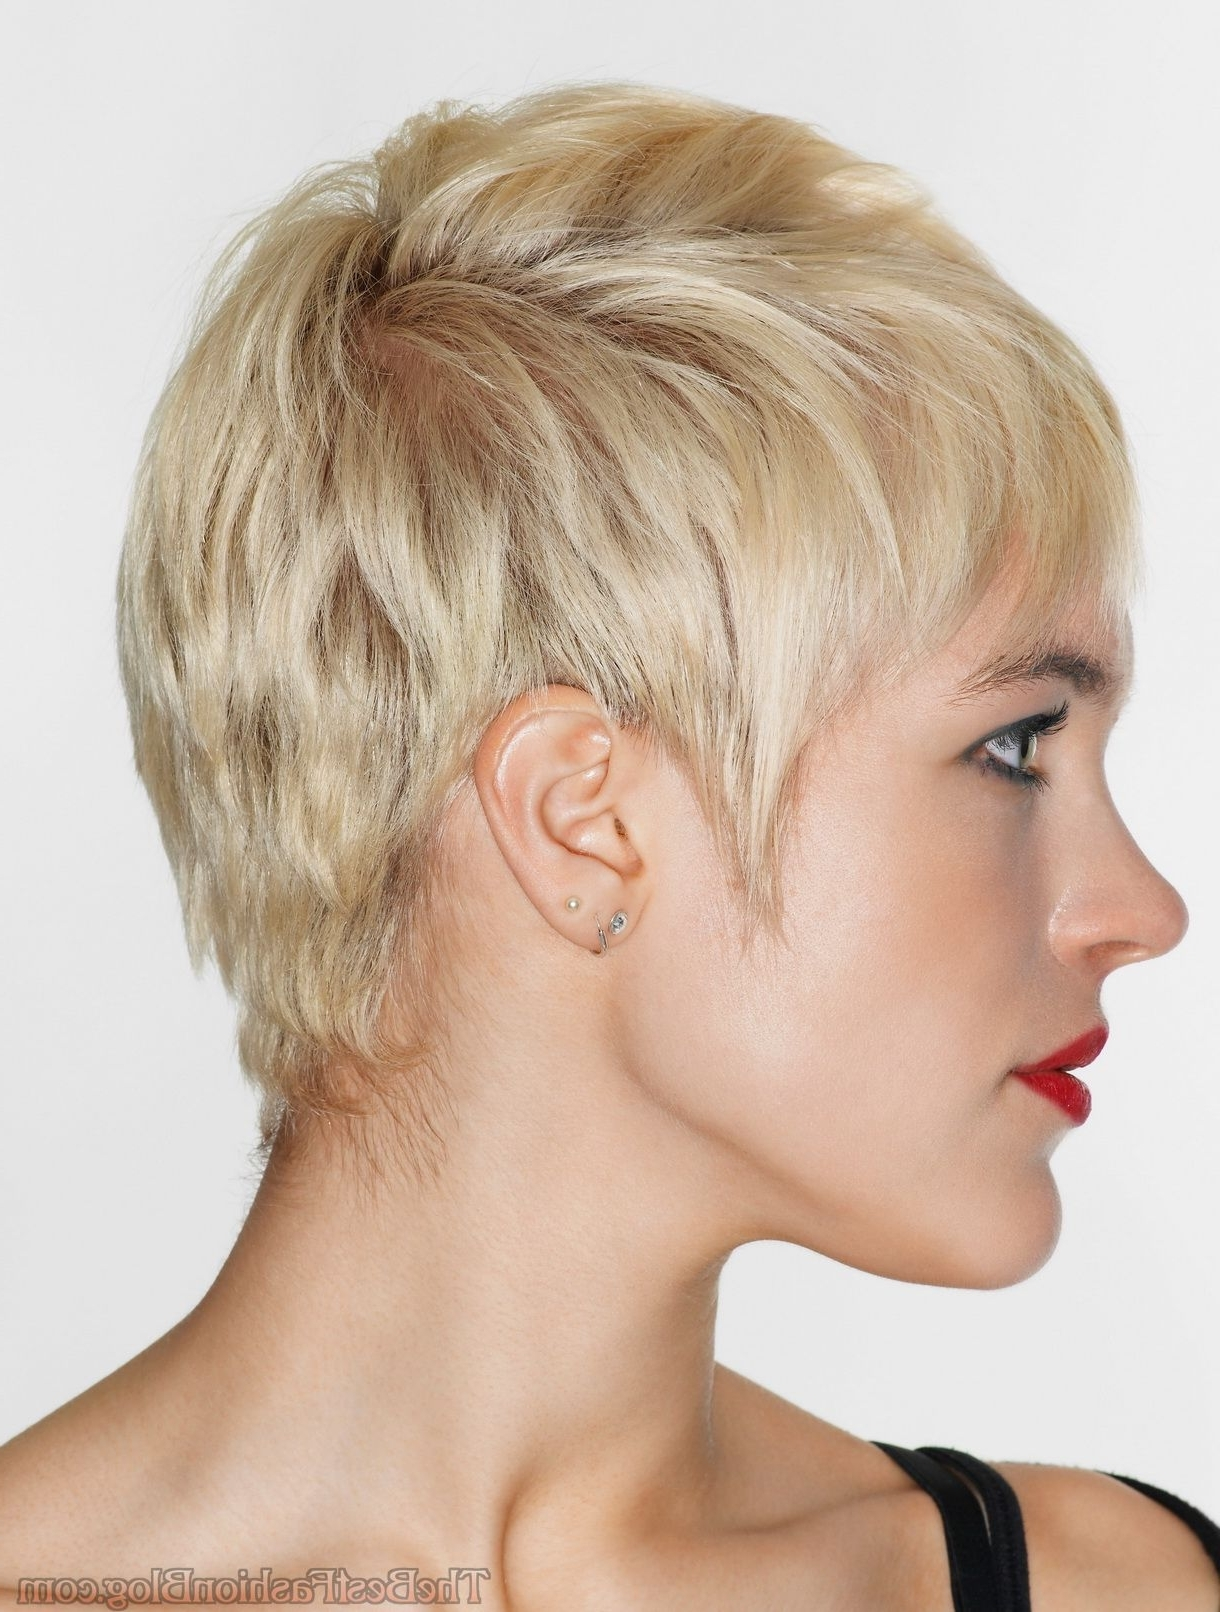 Classic Pixie Cut Hairstyles 2018 In Newest Classic Pixie Hairstyles (View 9 of 20)